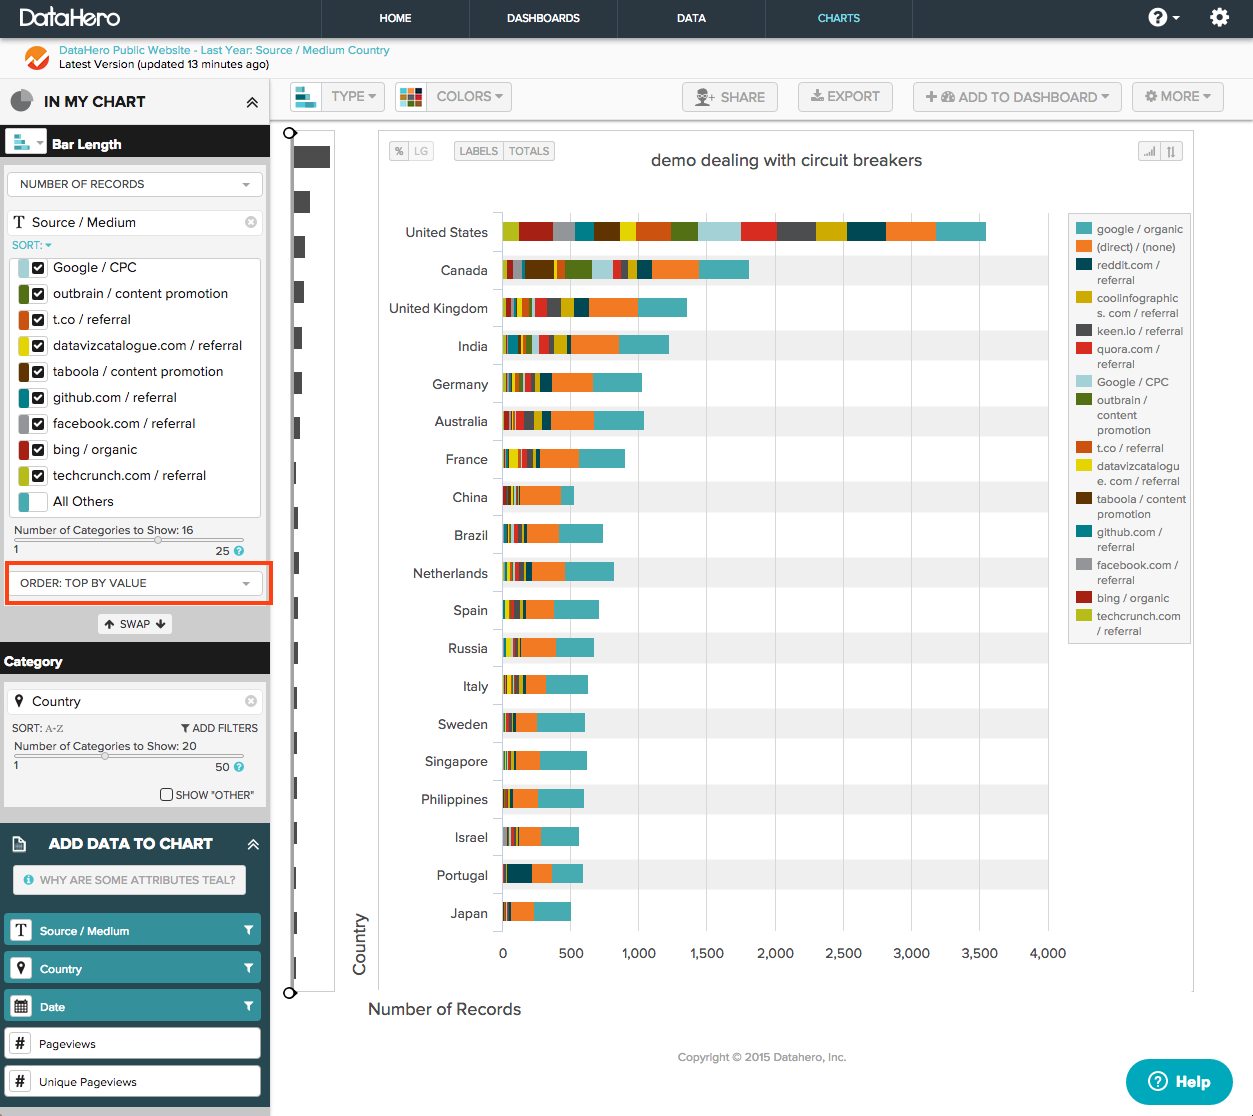 Users can control how data in charts is ordered in DataHero